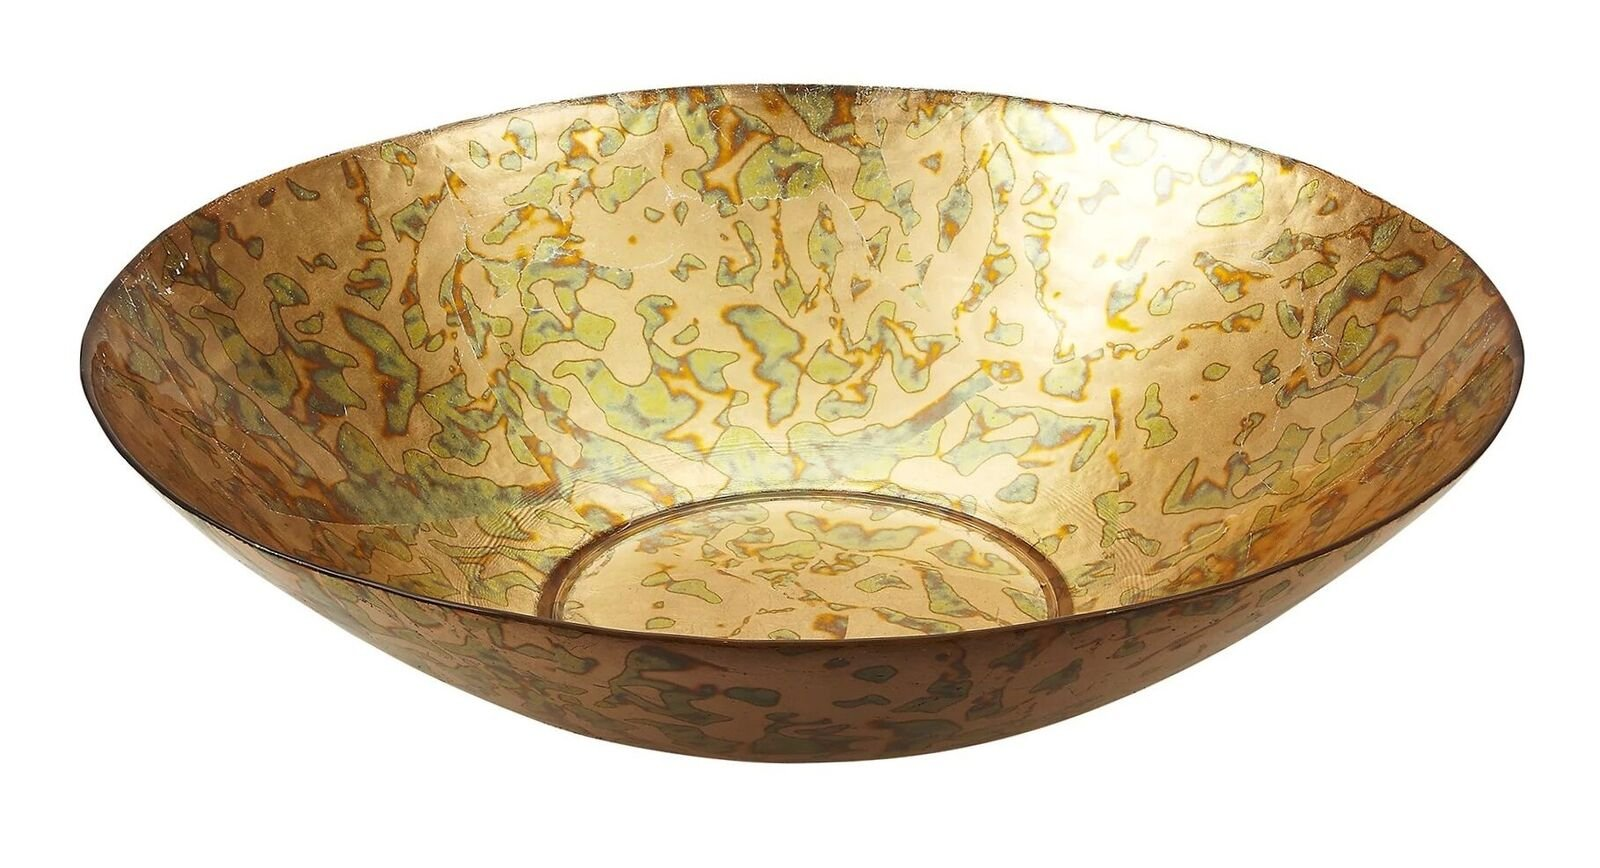 Red Pomegranate 9765 Gilded Tableware Centerpiece Bowl 16'' Gold Patina